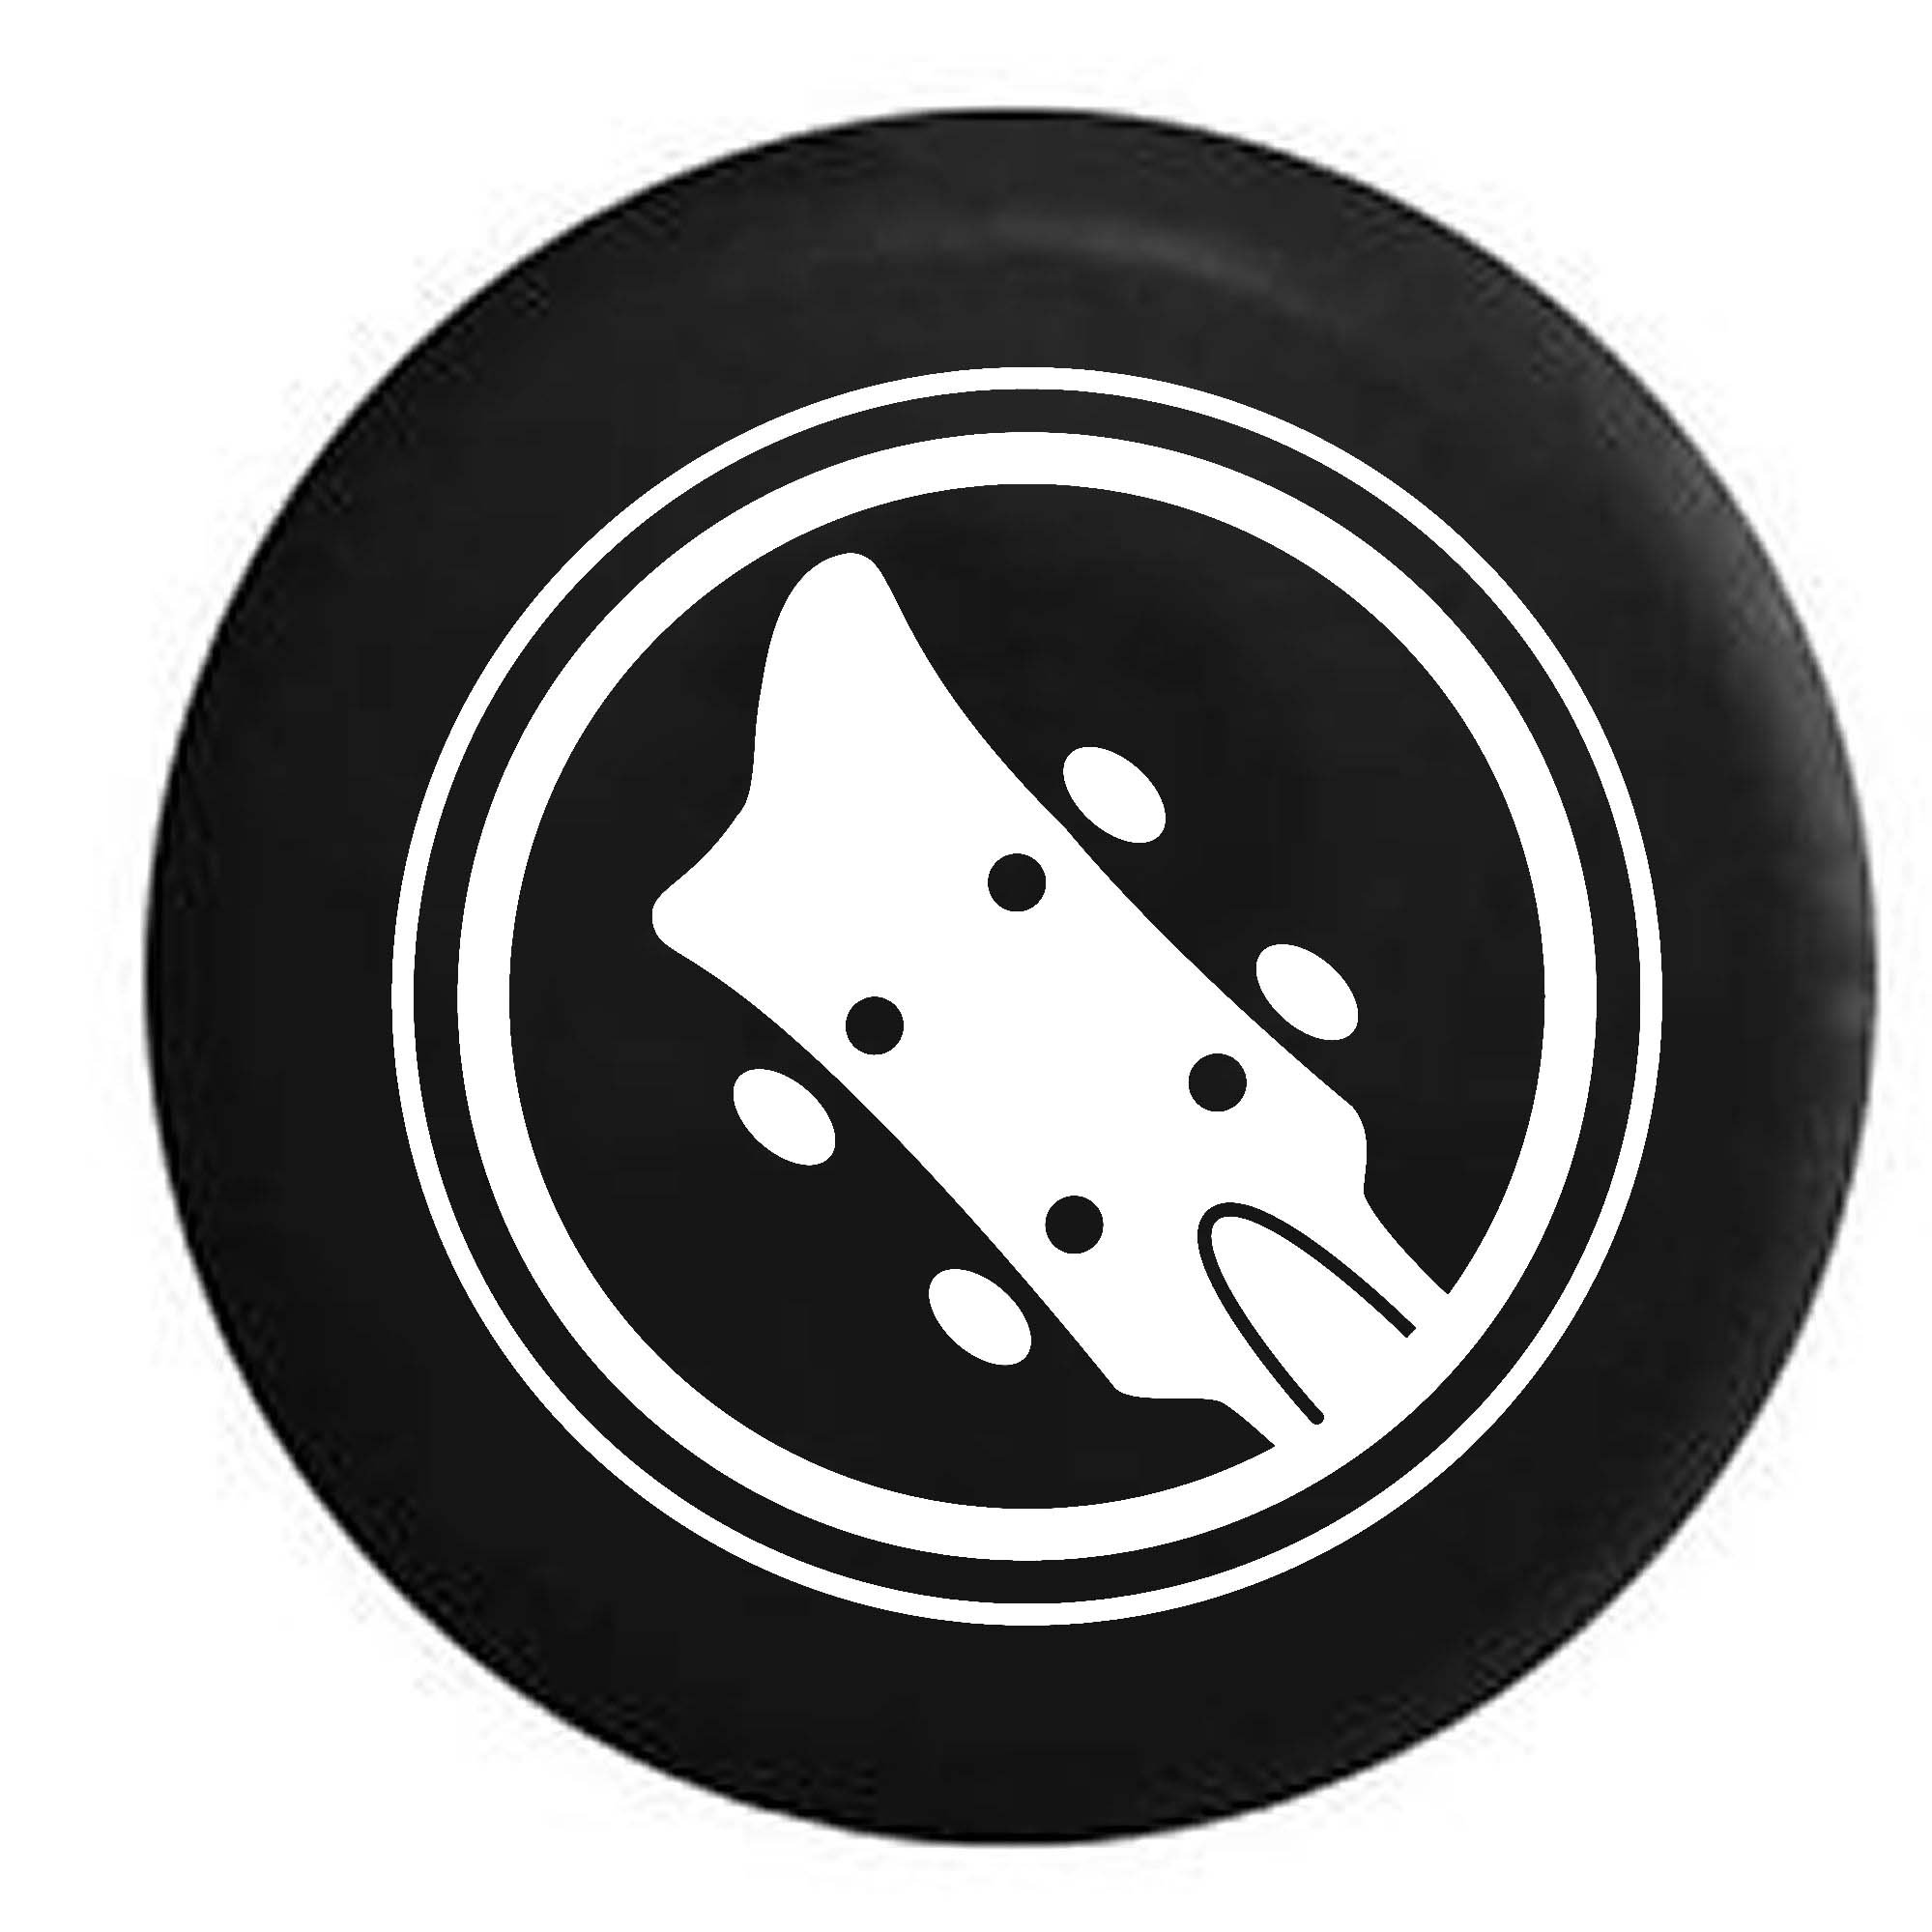 Acoustic Guitar Music Lover RV Spare Tire Cover OEM Vinyl Black 32 in by Pike Outdoors